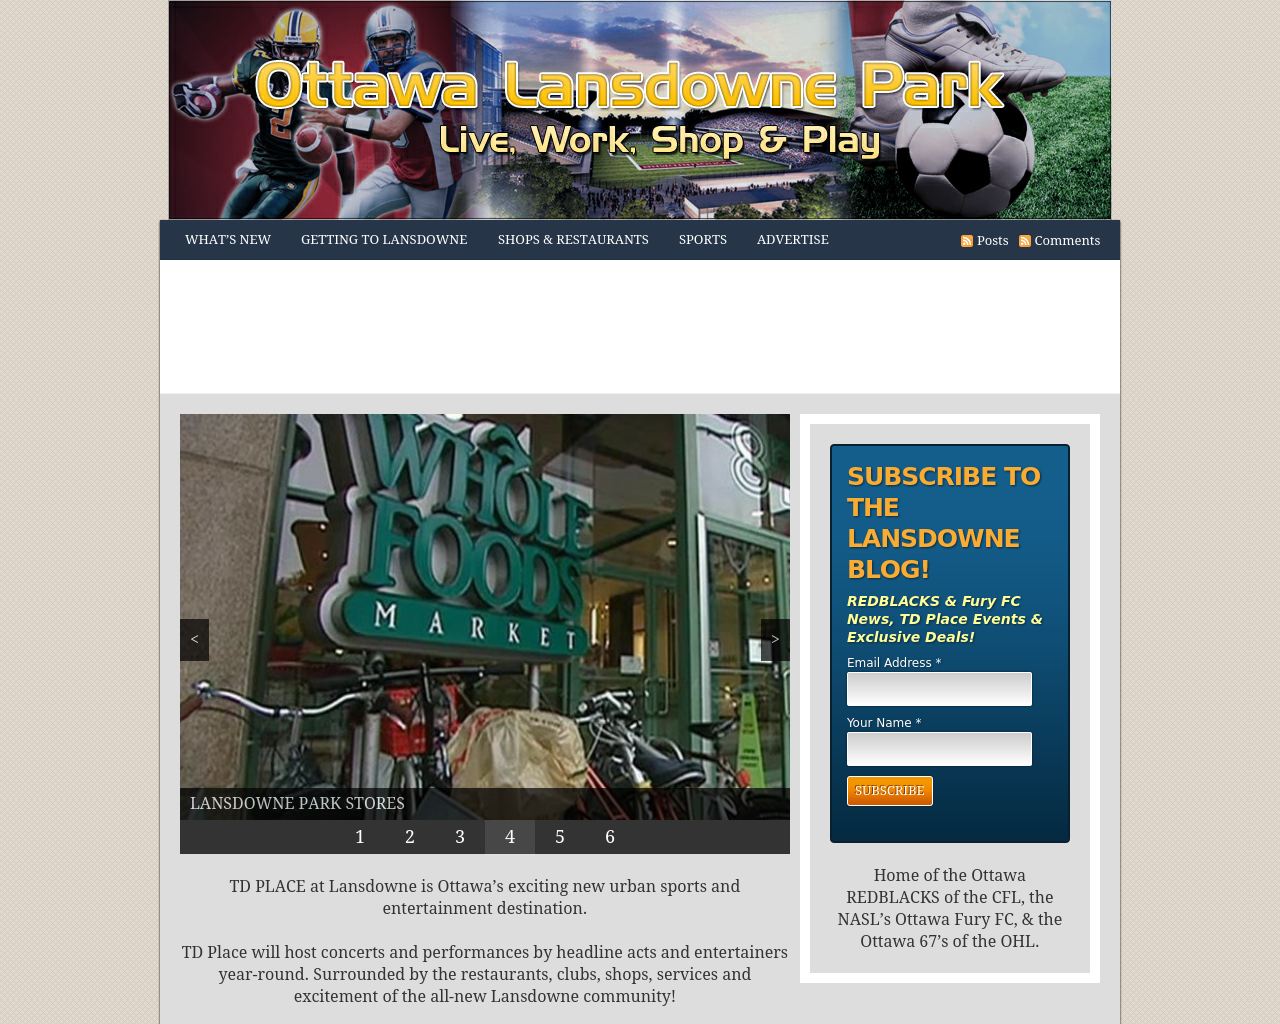 Ottawa-Lansdowne-Park-Advertising-Reviews-Pricing